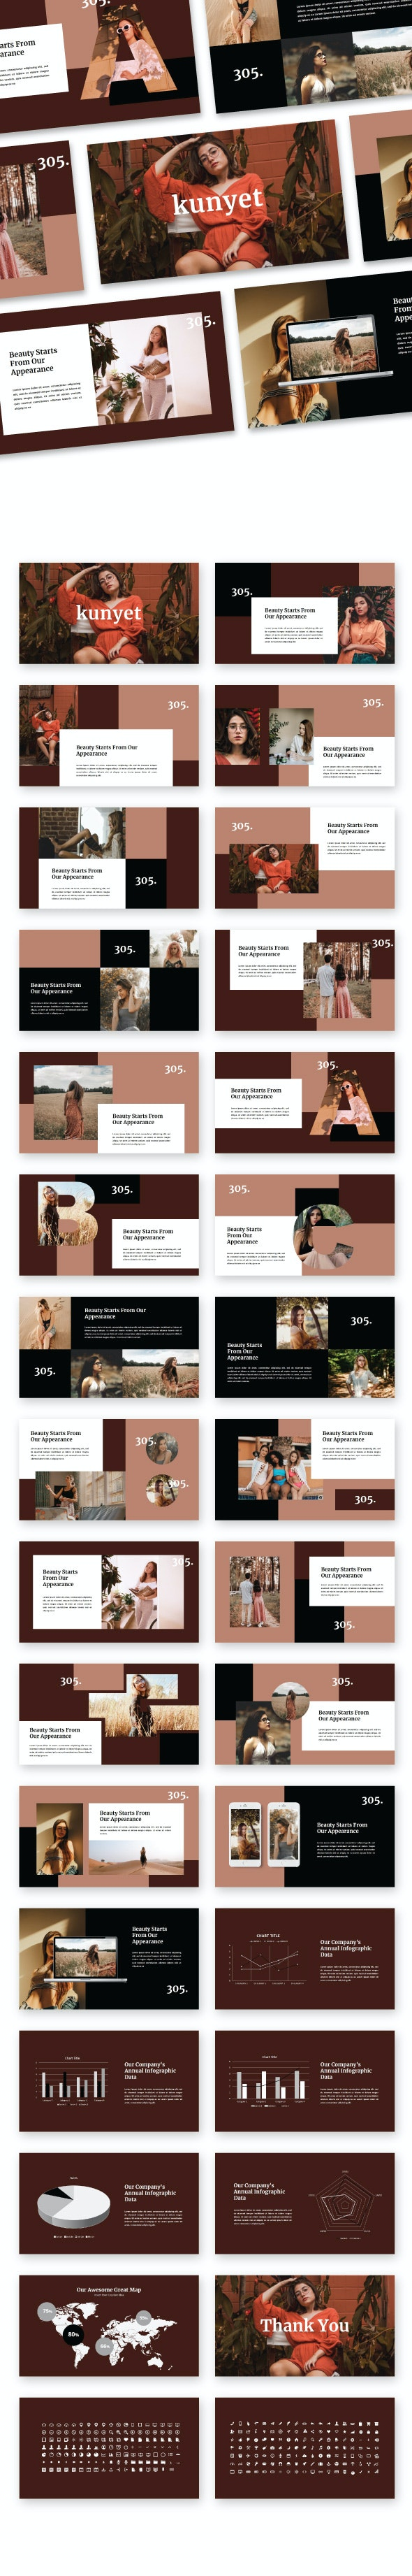 Kunyet - Fashion & Modeling PowerPoint - Creative PowerPoint Templates